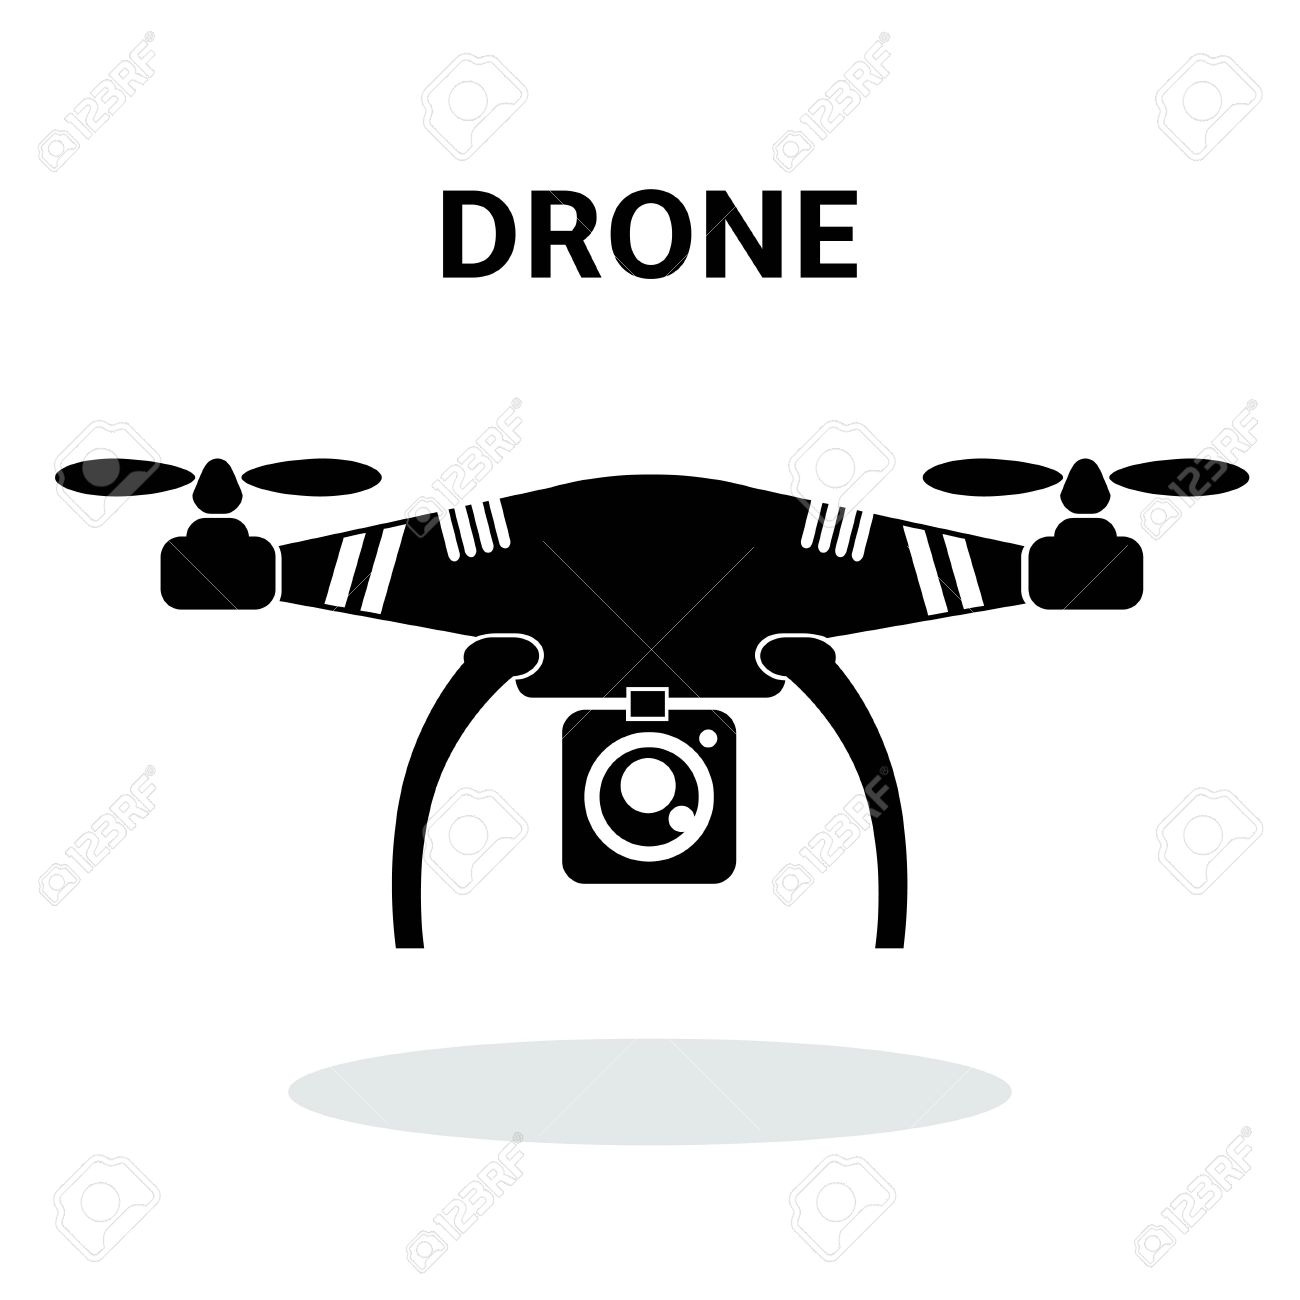 Drone clipart. Unique gallery digital collection